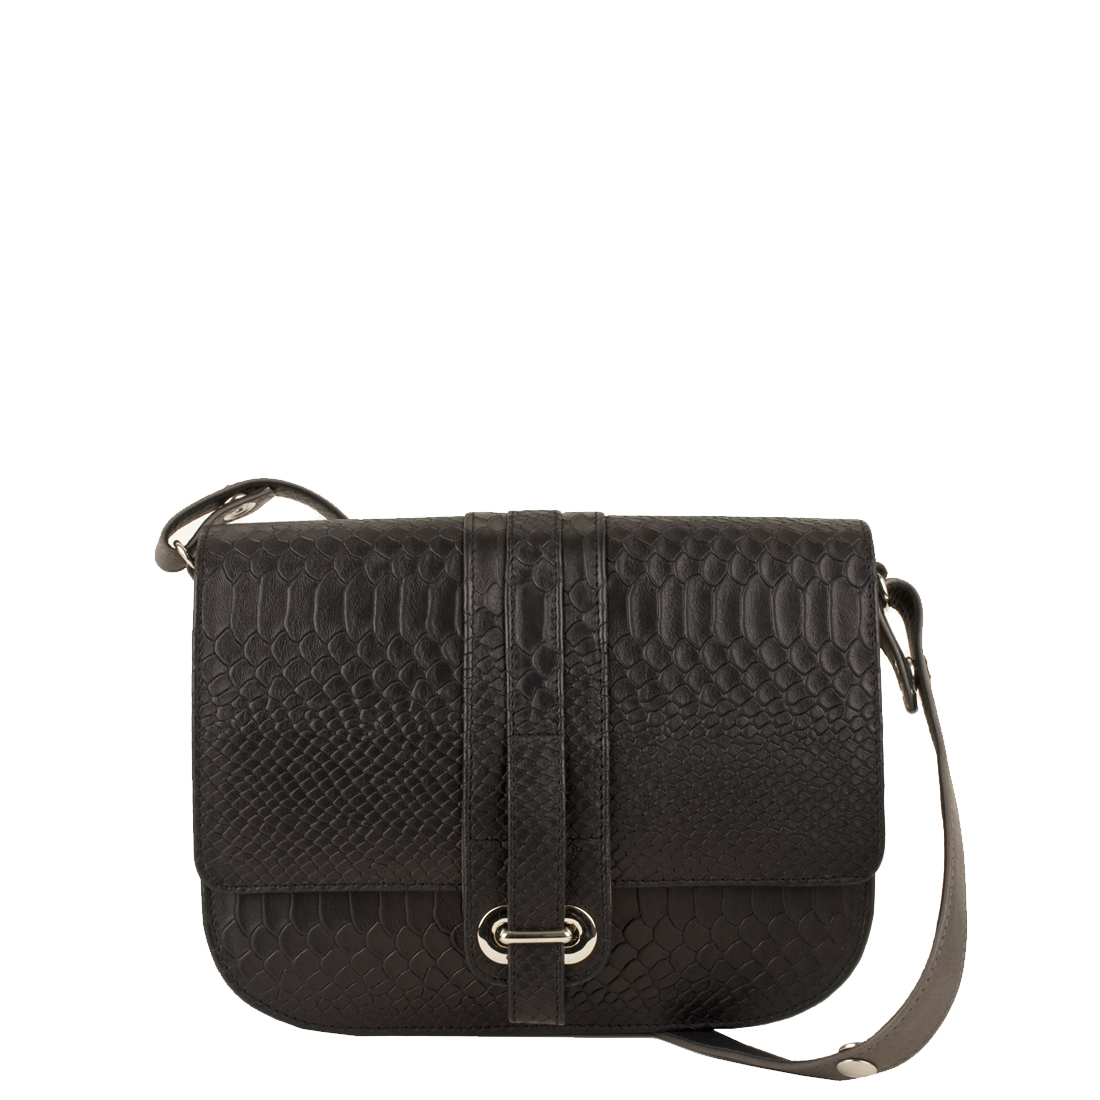 Ella Black Leather Across Body Bag